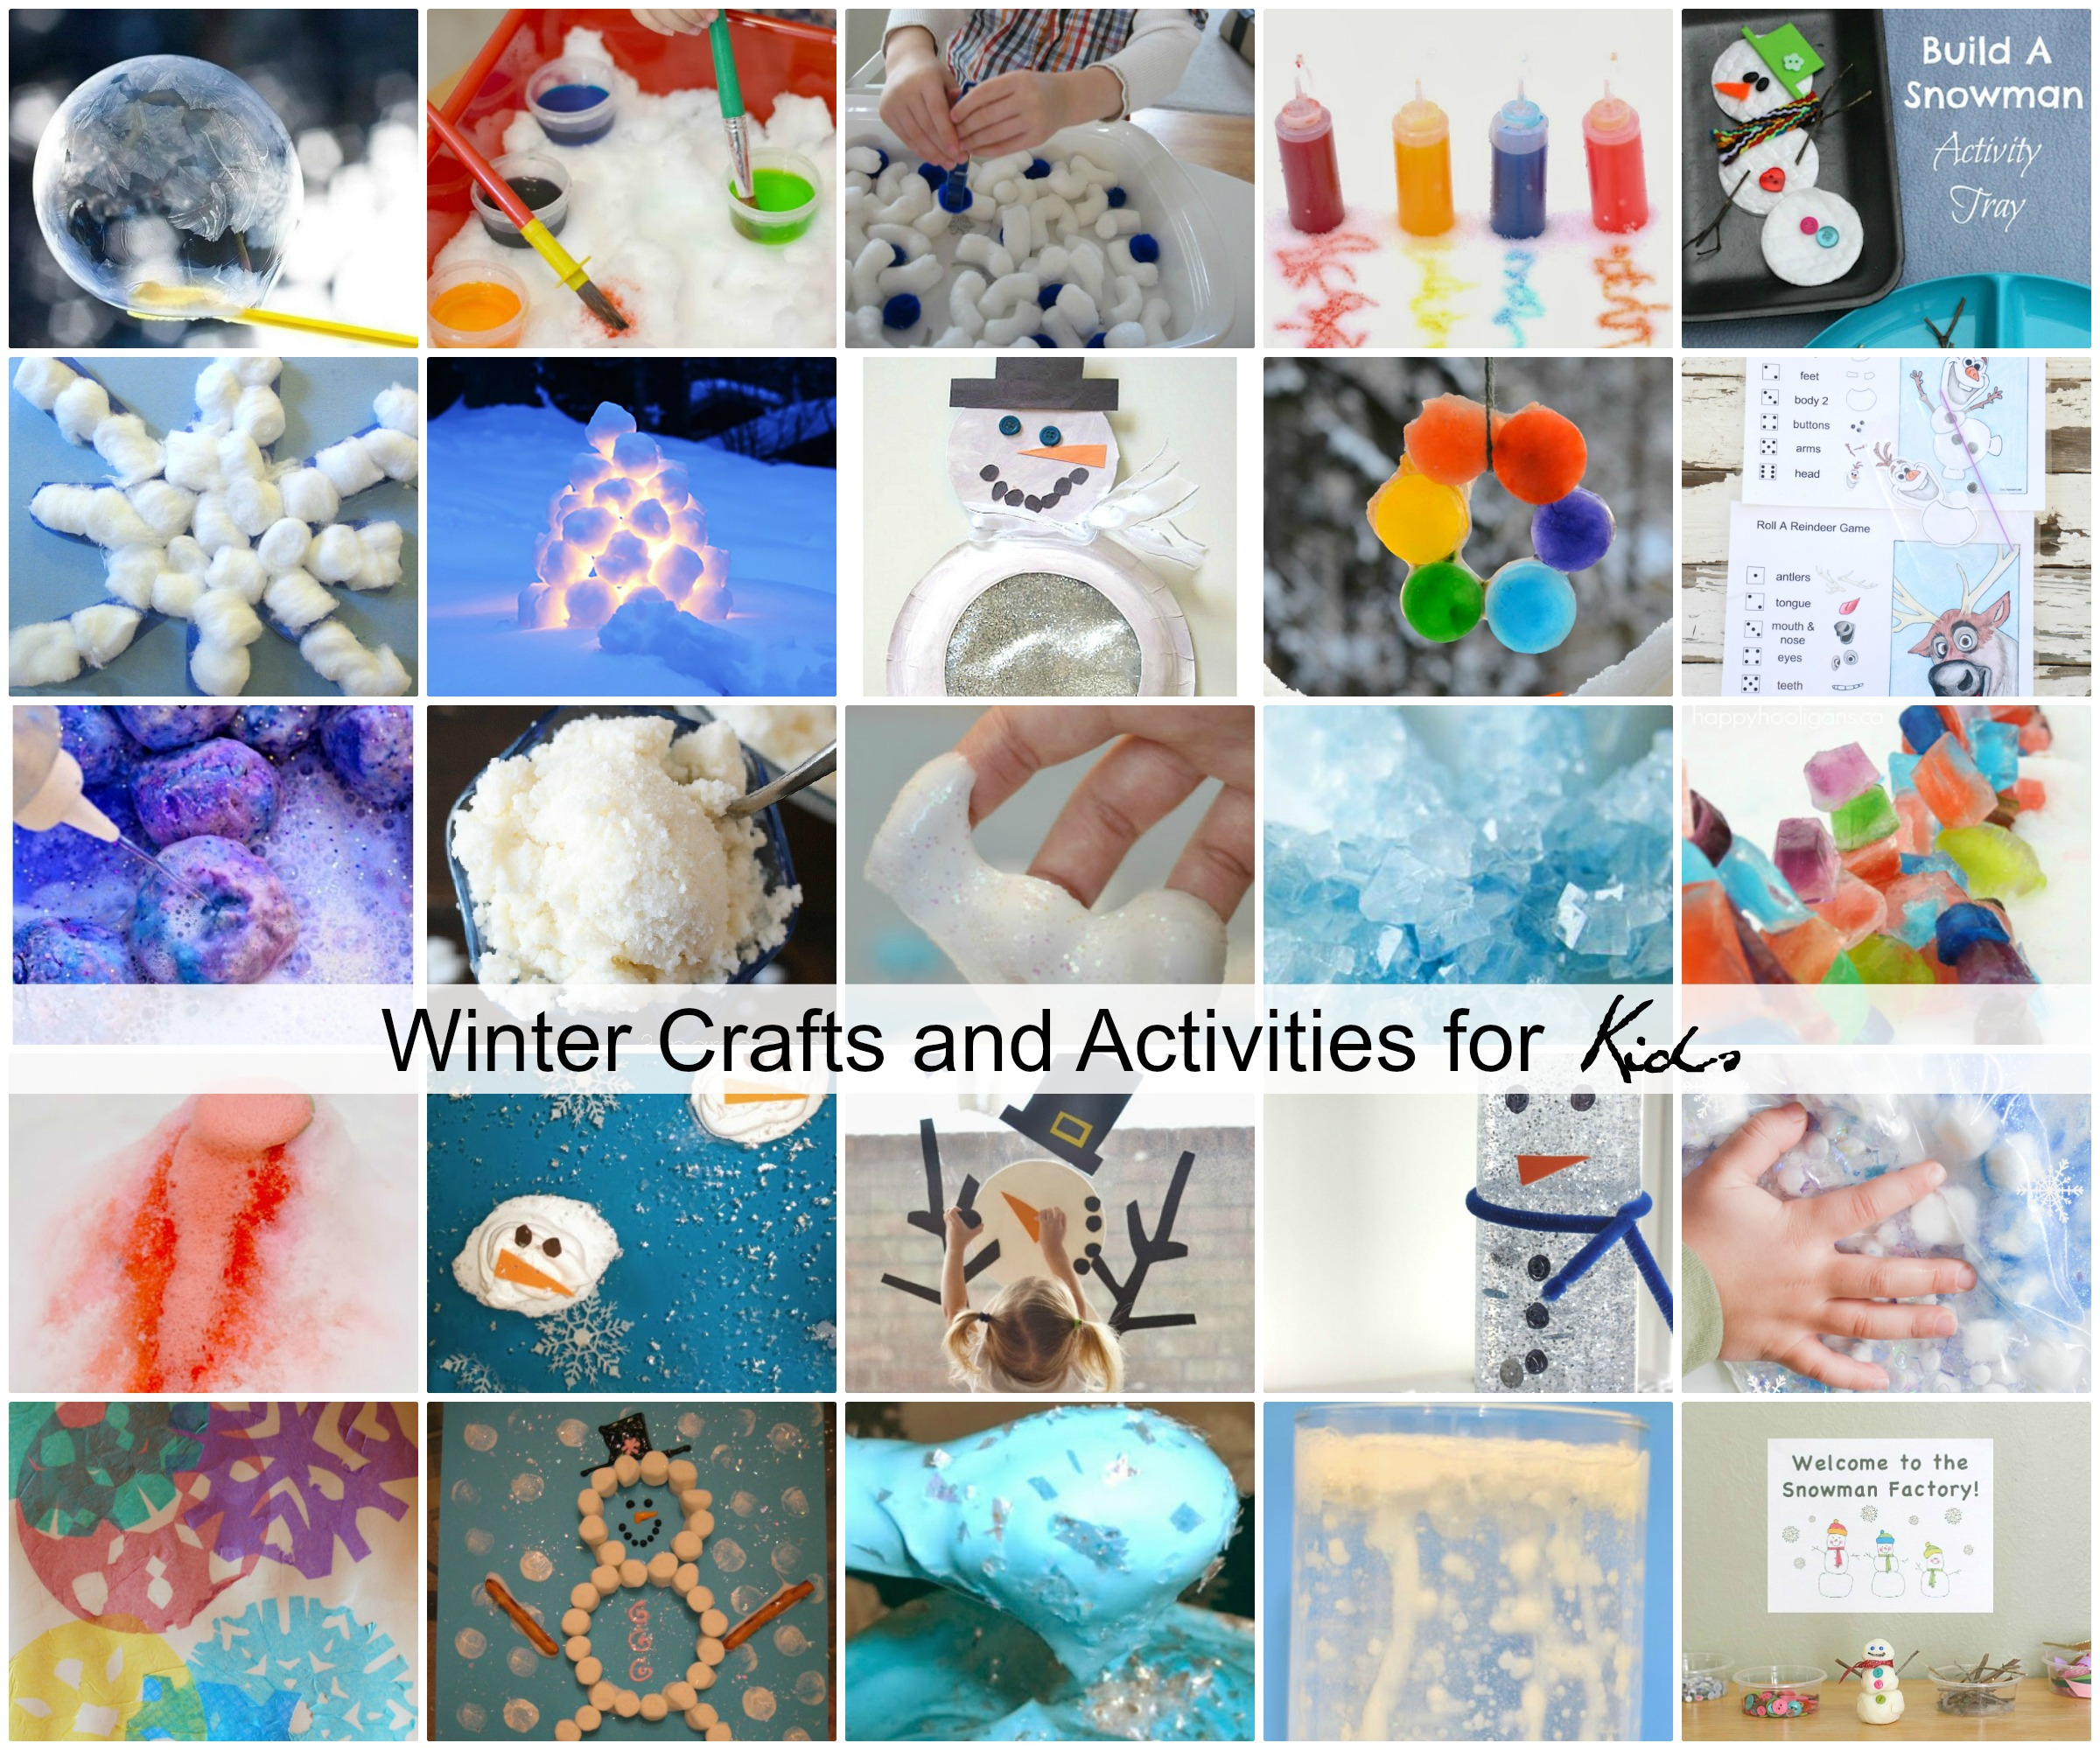 Kids Craft Room Ideas: Winter Crafts And Activities For Kids